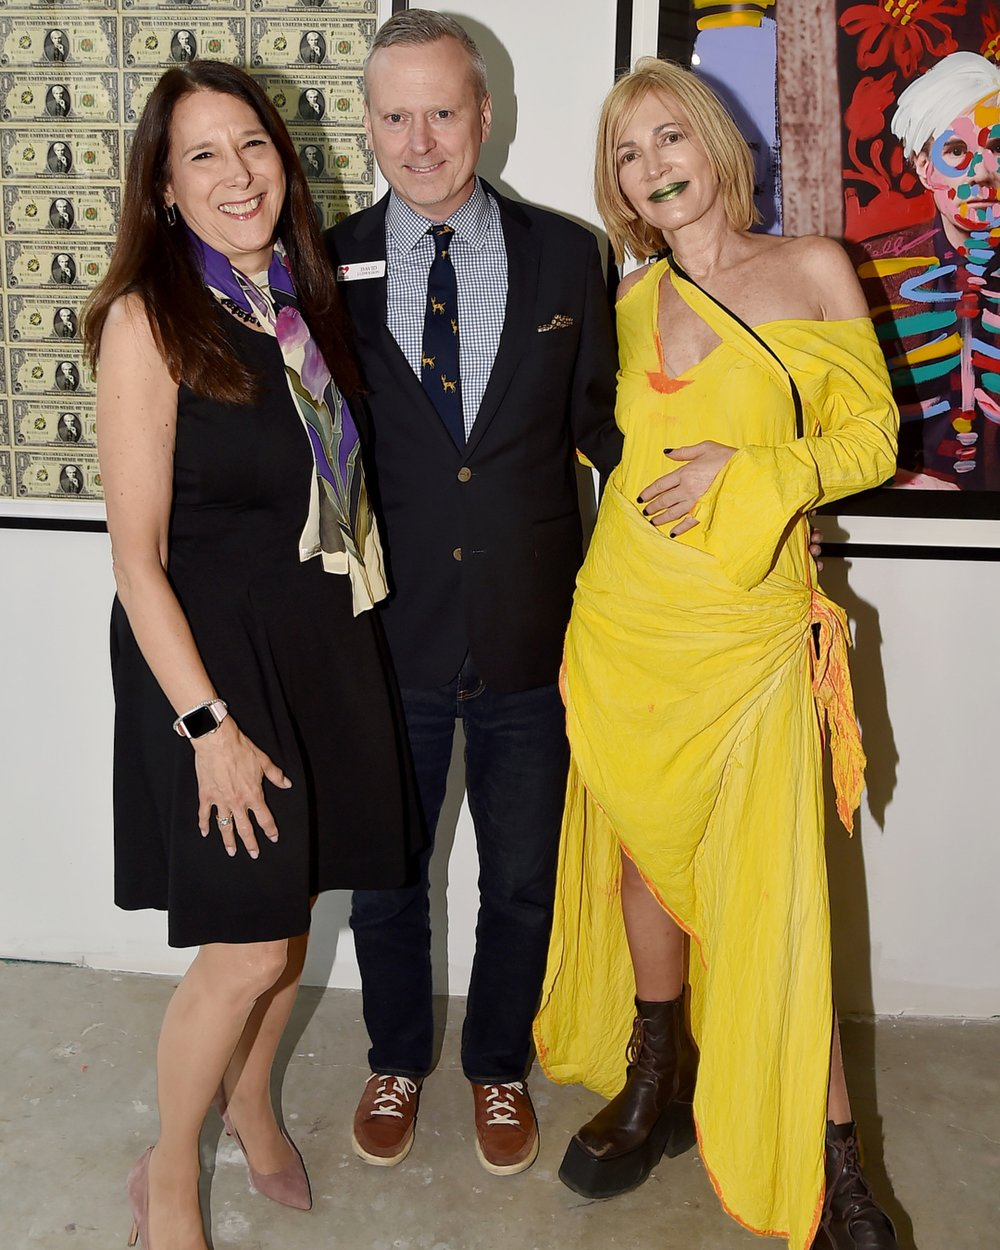 Karen Pearl CEO of GLWD with David Ludwigson VP of GLWD and Karen Bystedt.